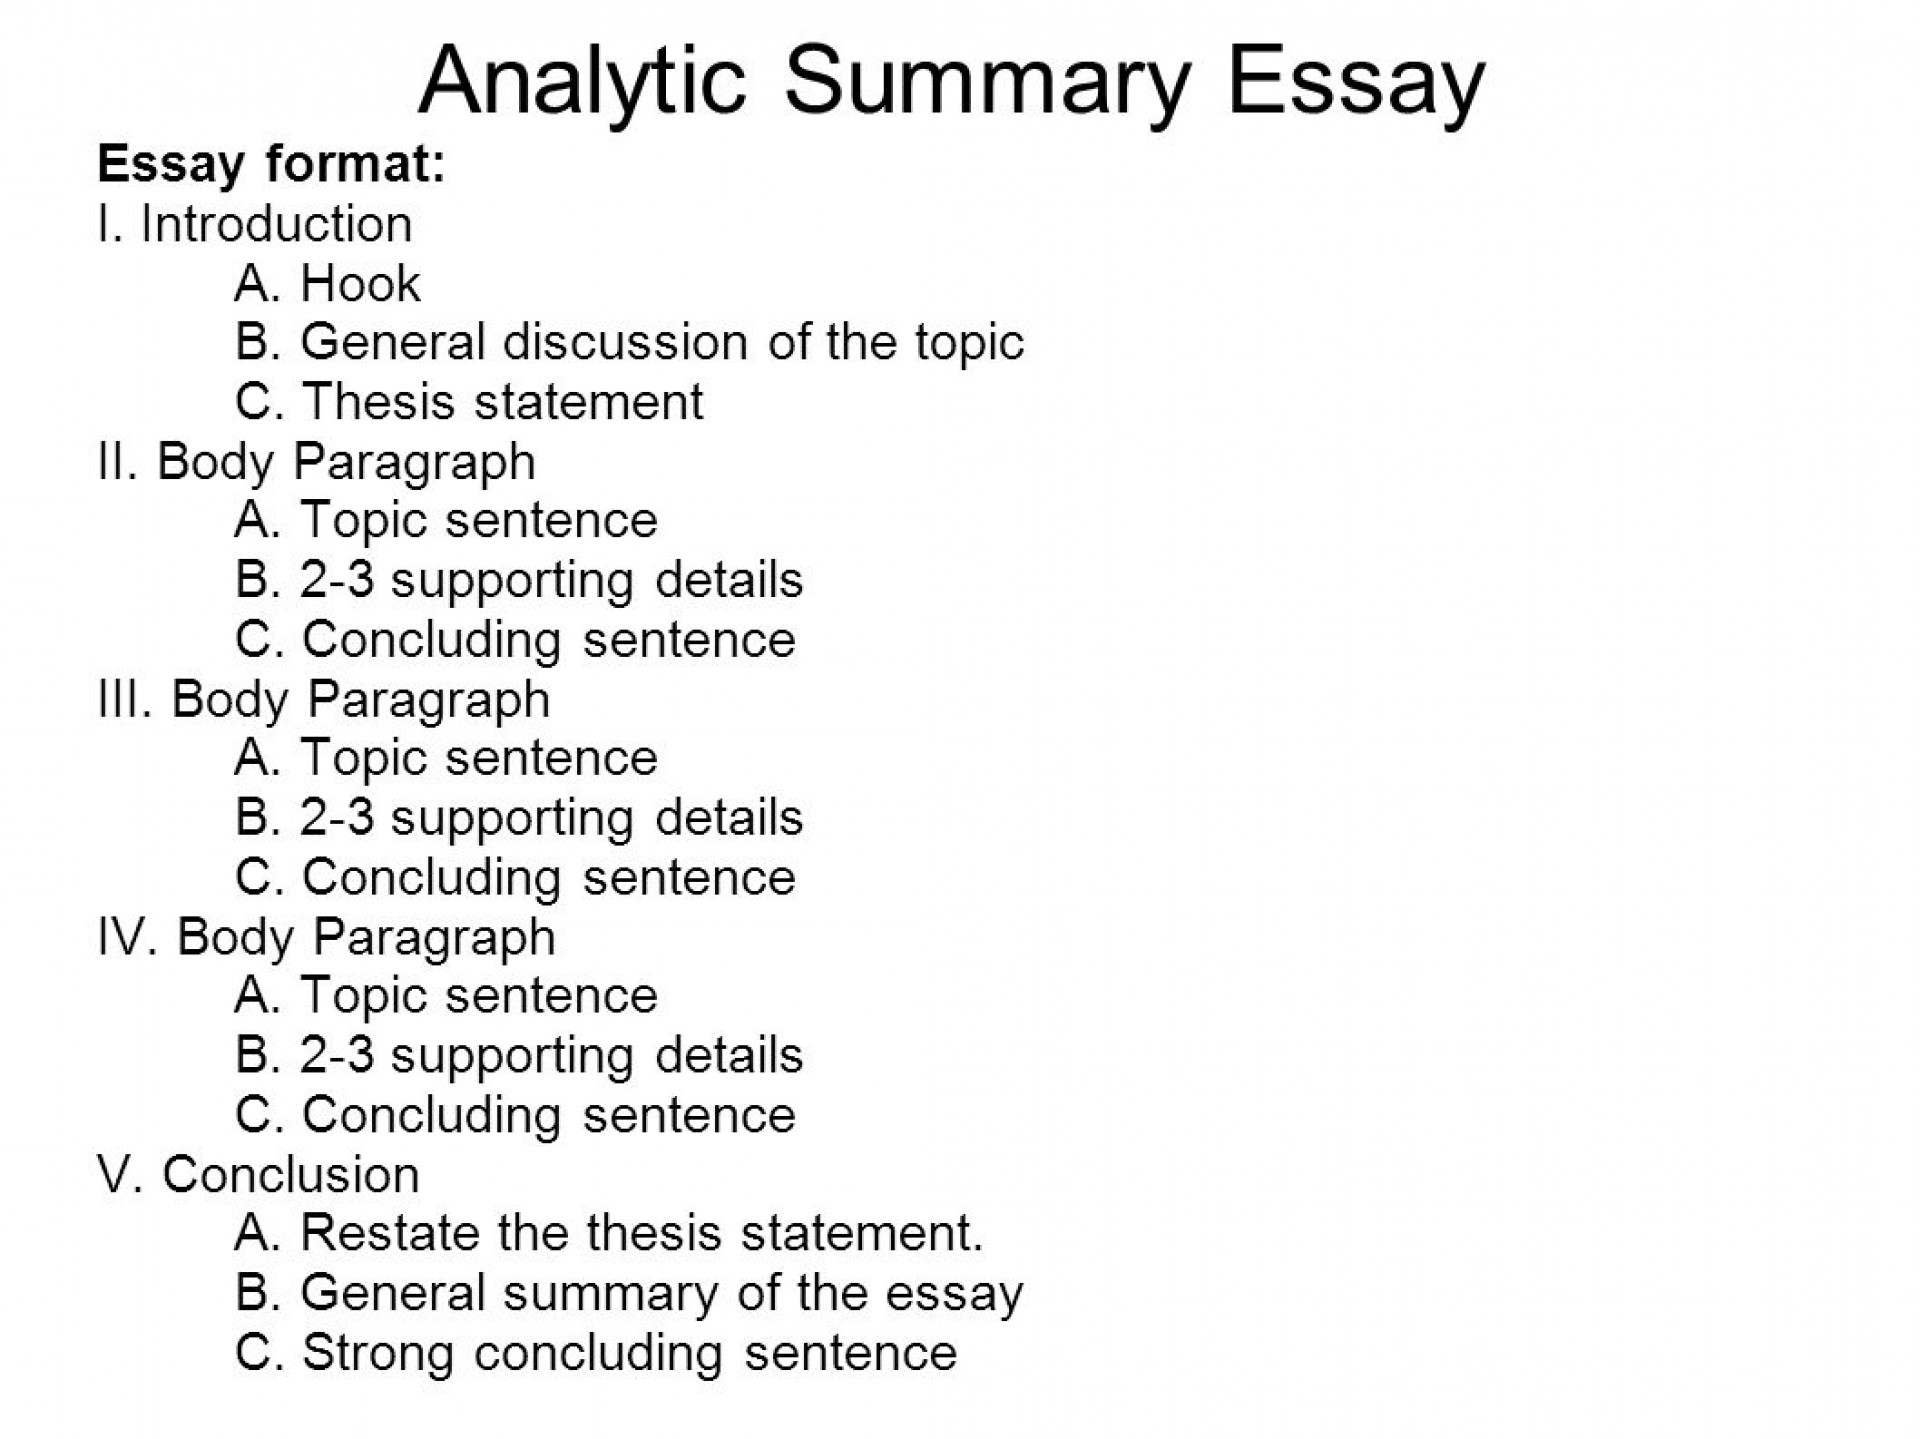 010 Essay Example Hook Summary Format Gxart Resume Literarynalysis Sli Critical Outline Template Samplenalytical Mla Pdf How To Write Frightening A Movie Review For College On An Article Introduction Paragraph 1920